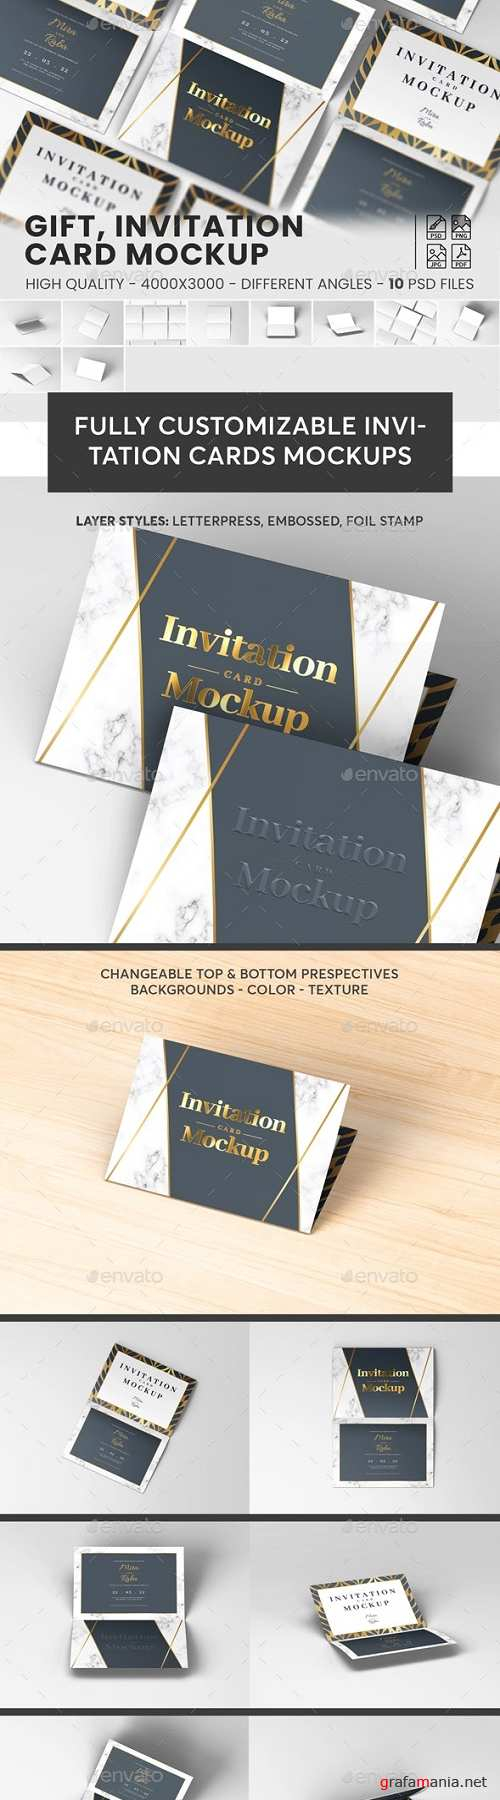 Greeting, Invitation Card Mockup 23643114